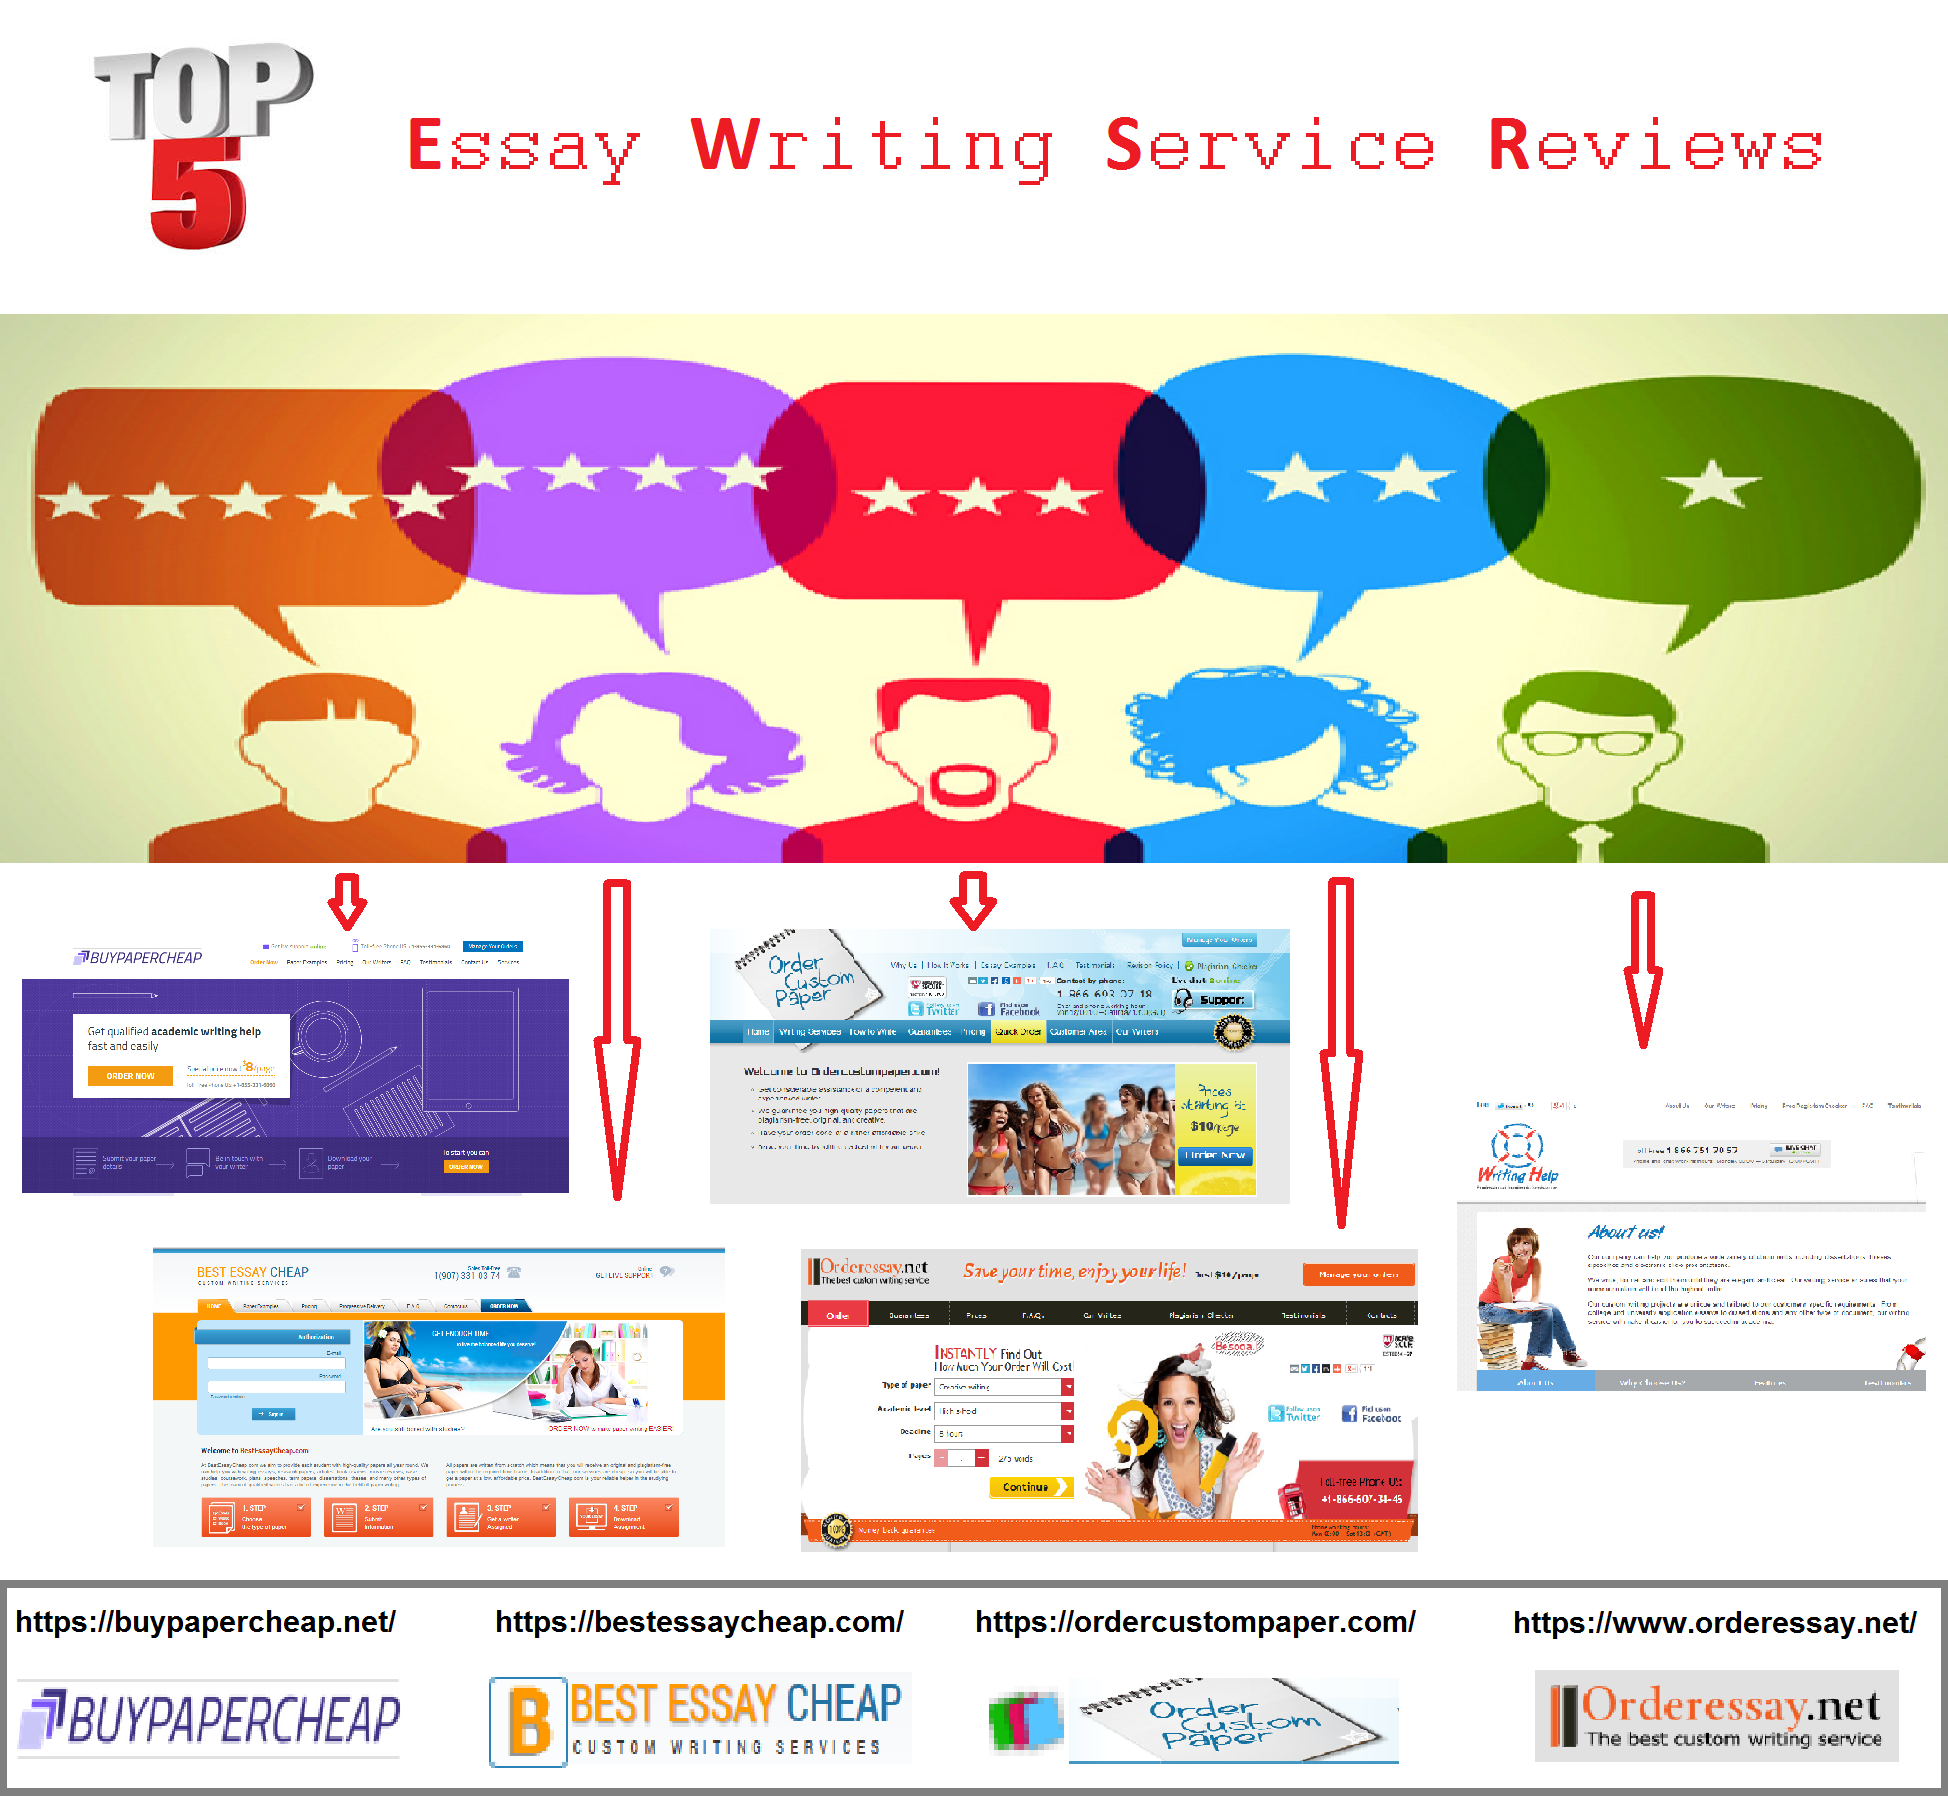 019 Essay Example Best Essays Review Homework Academic Writing Service Company Uk Ideas Of Services Reviews Sale Discount Brillian To Work For Impressive Help Full